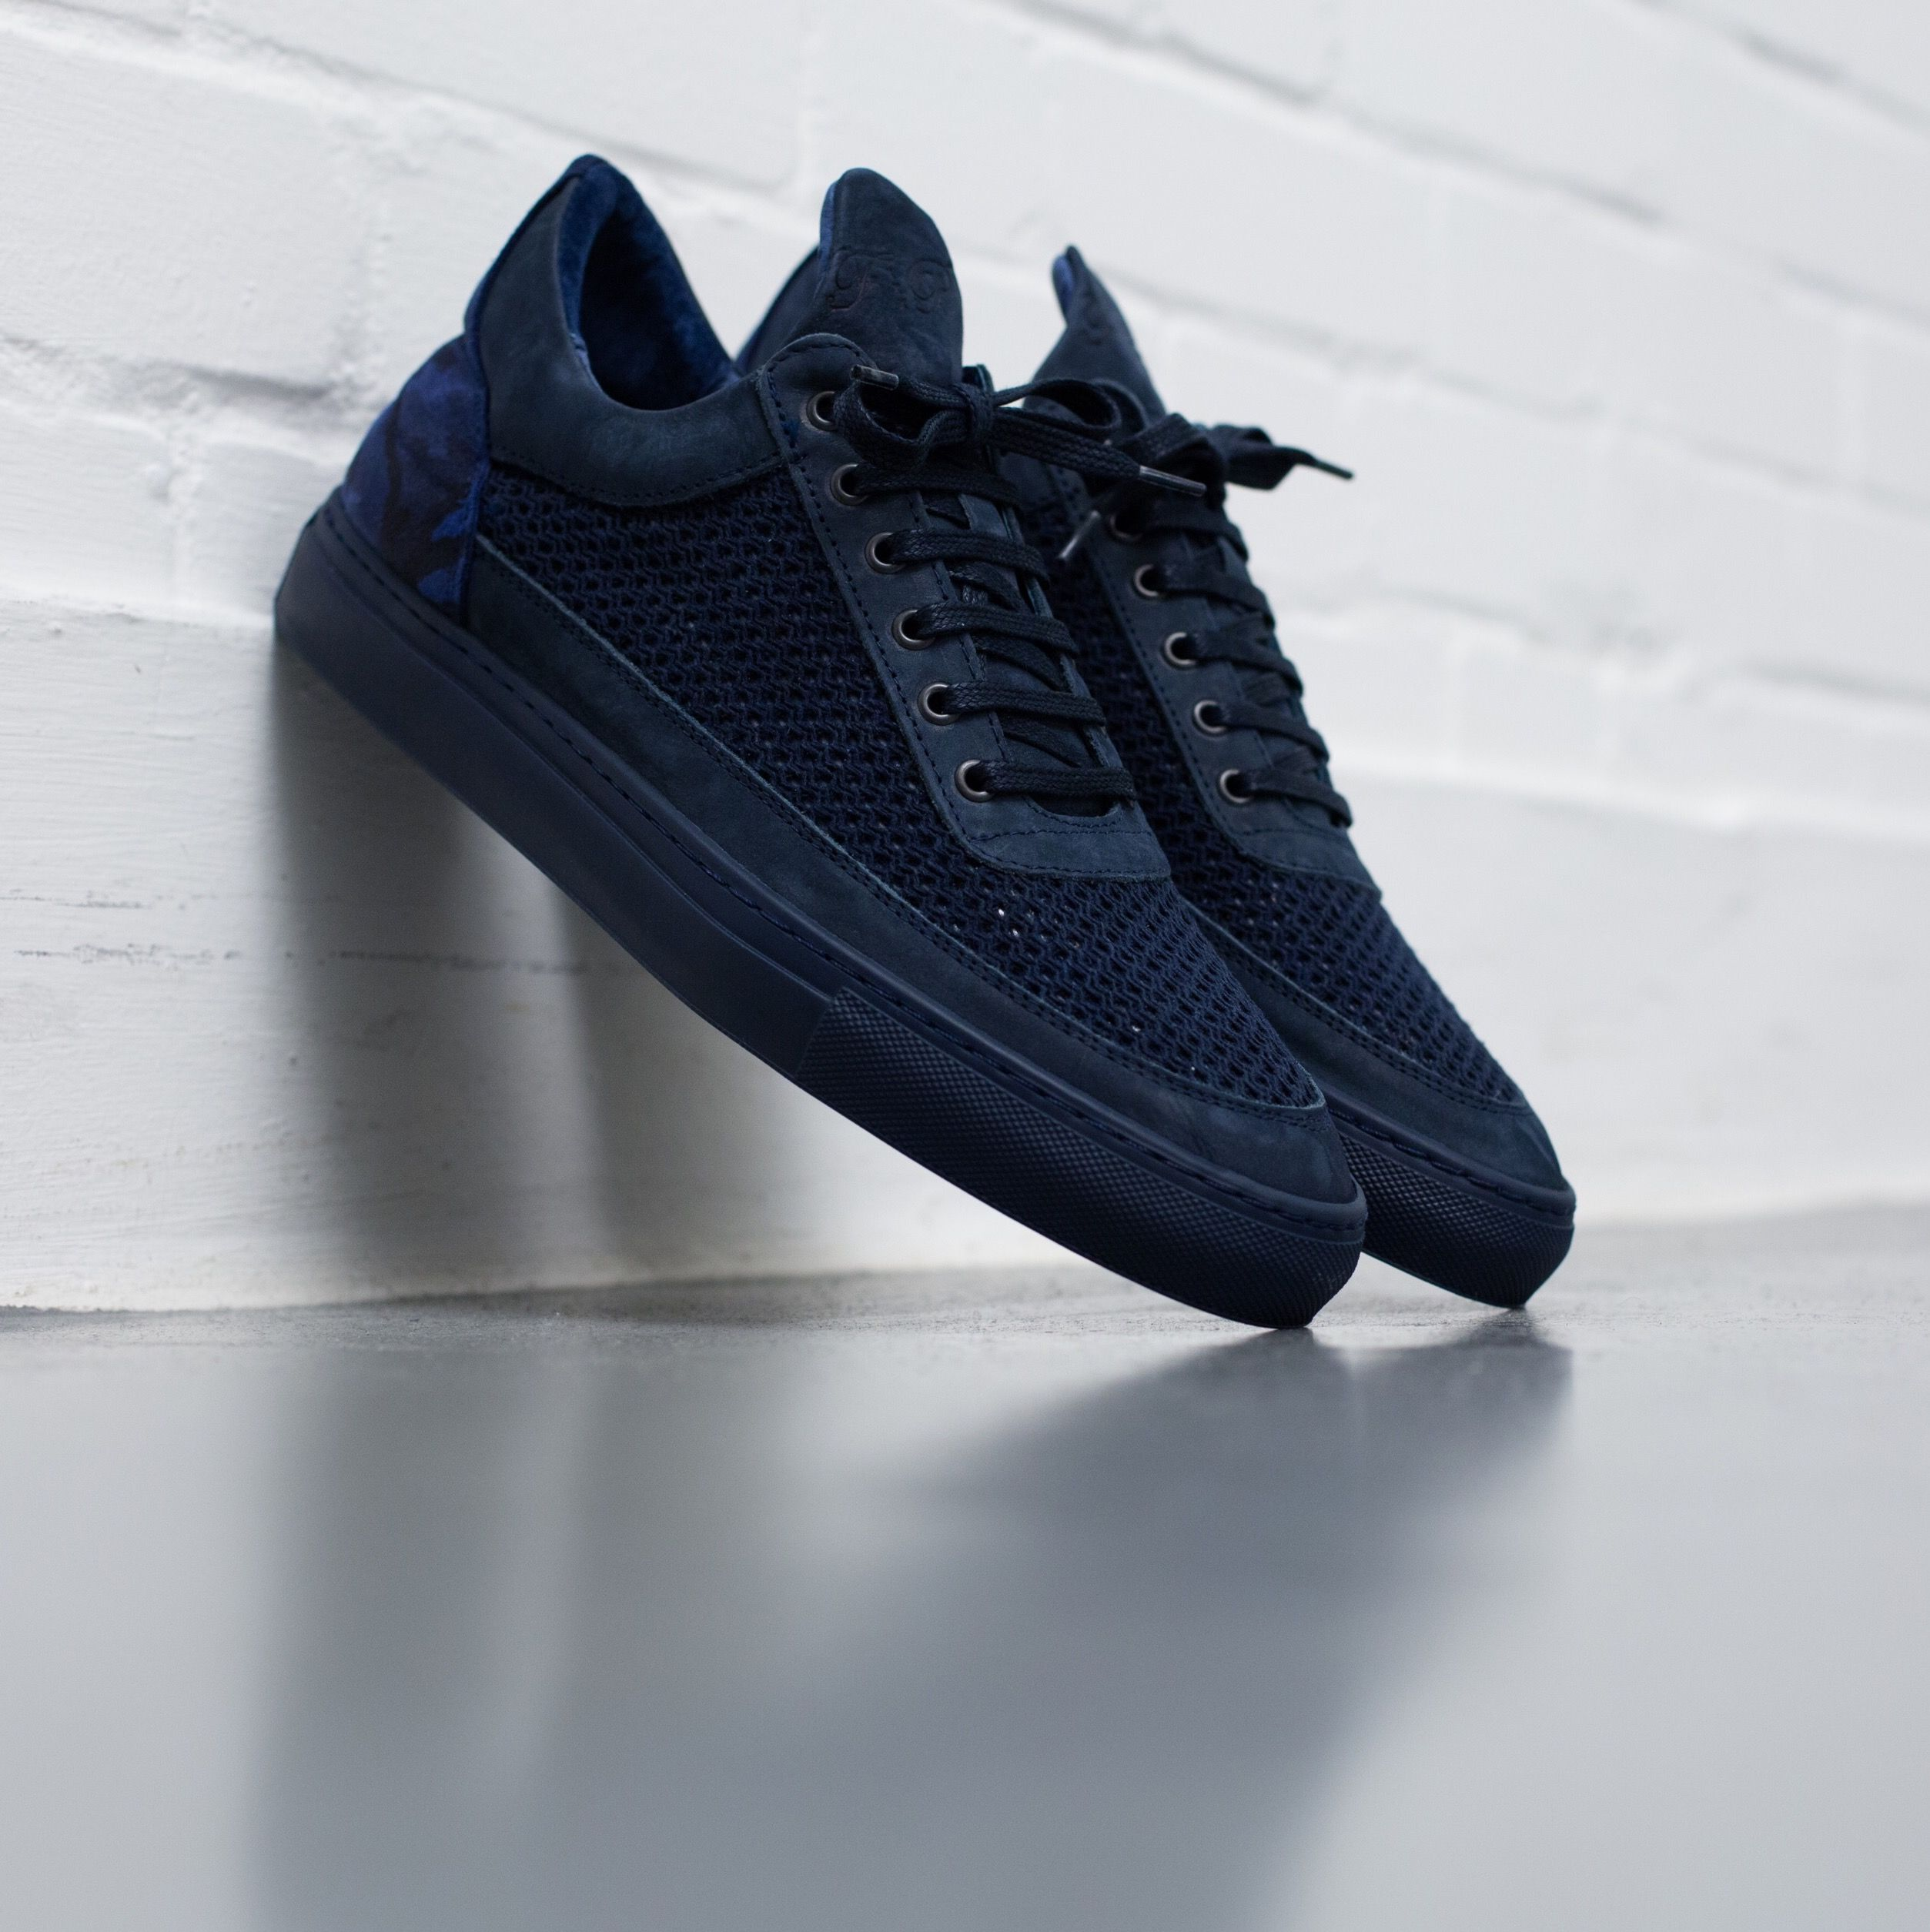 meet 60d15 07040 Filling Pieces Low Top Navy Mesh Rizkys 2.0 - 5 Year Anniversary Pack